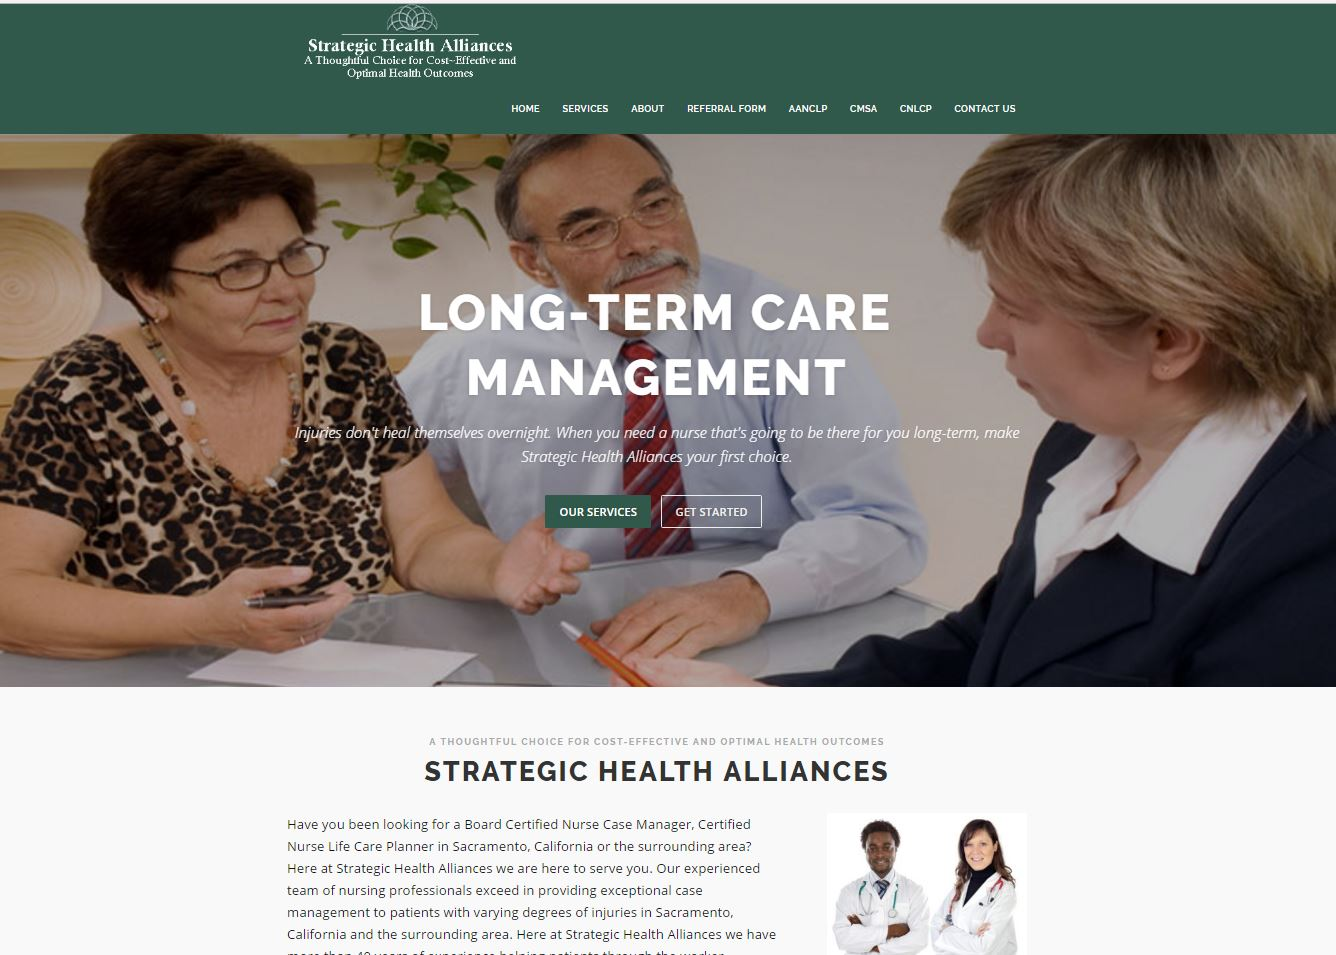 Strategic Health Alliances